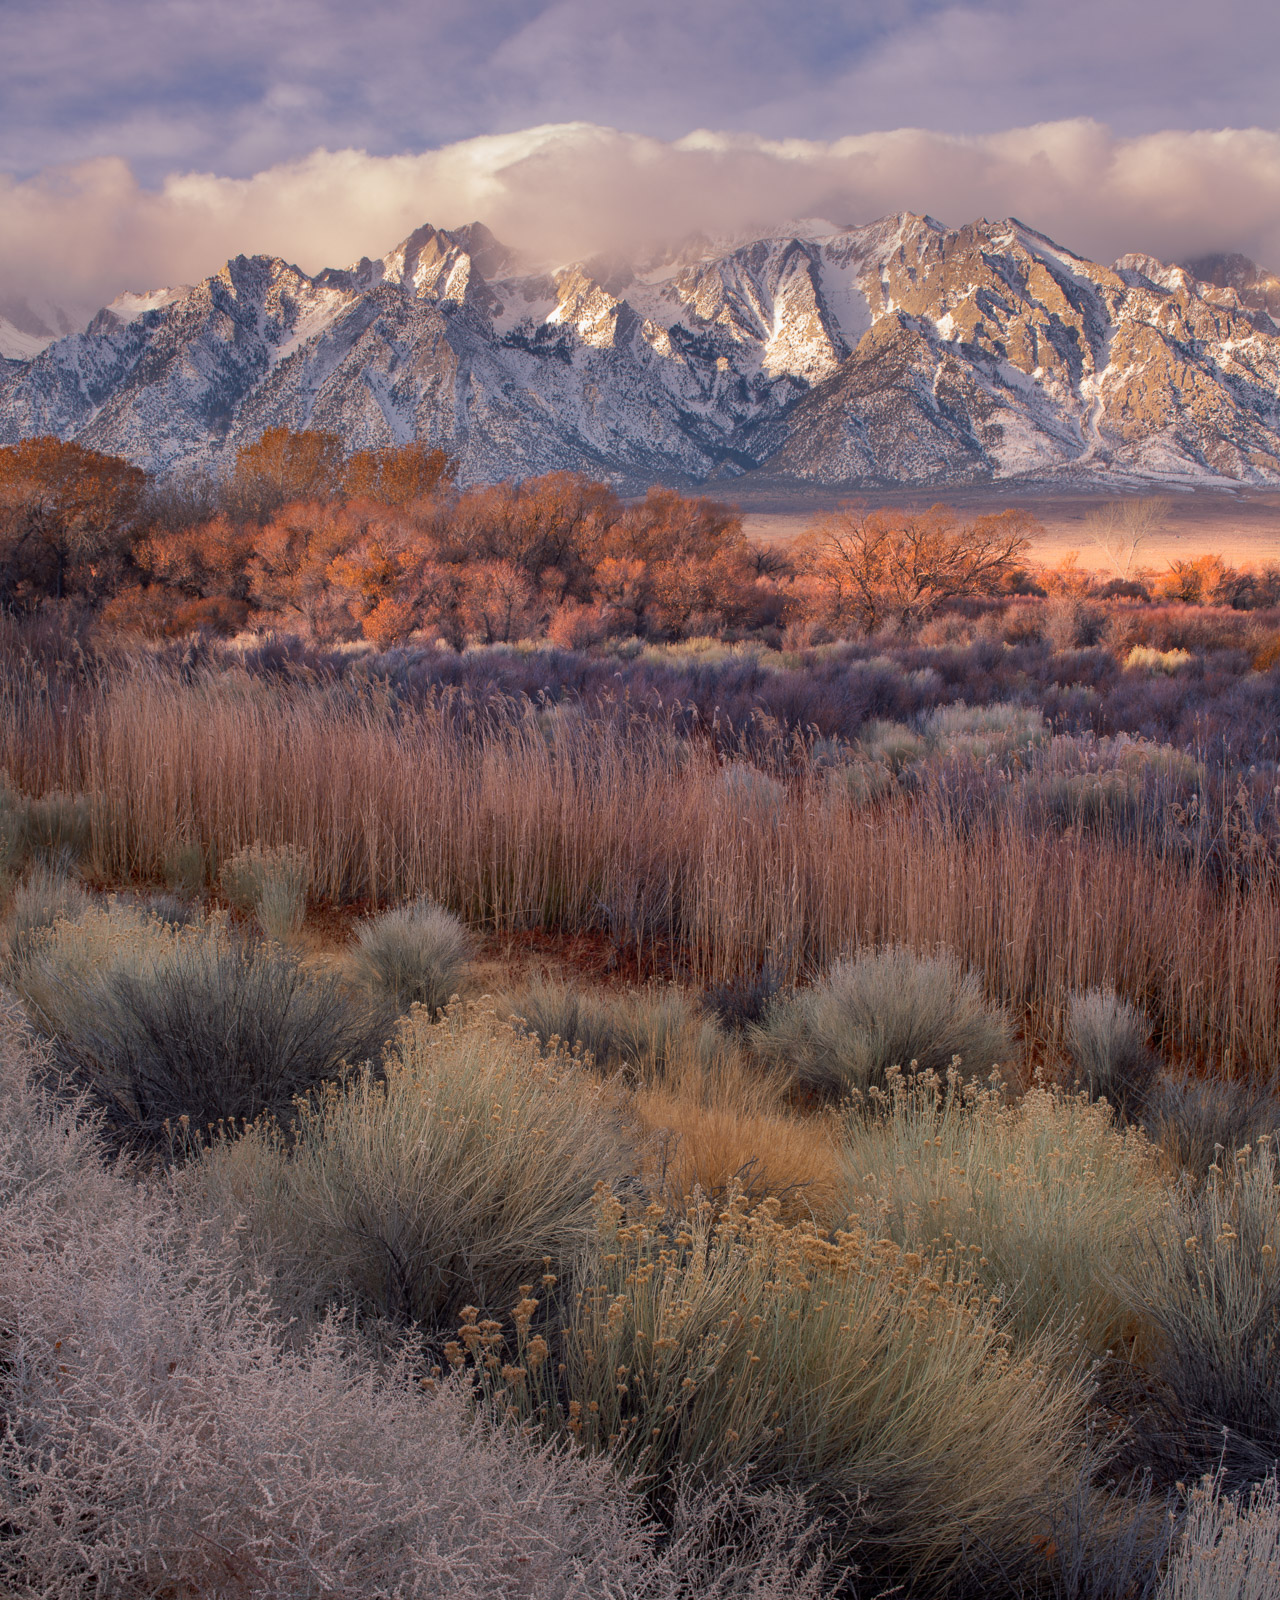 Multi-colored layers below the Sierra Mountains from the Owens Valley.